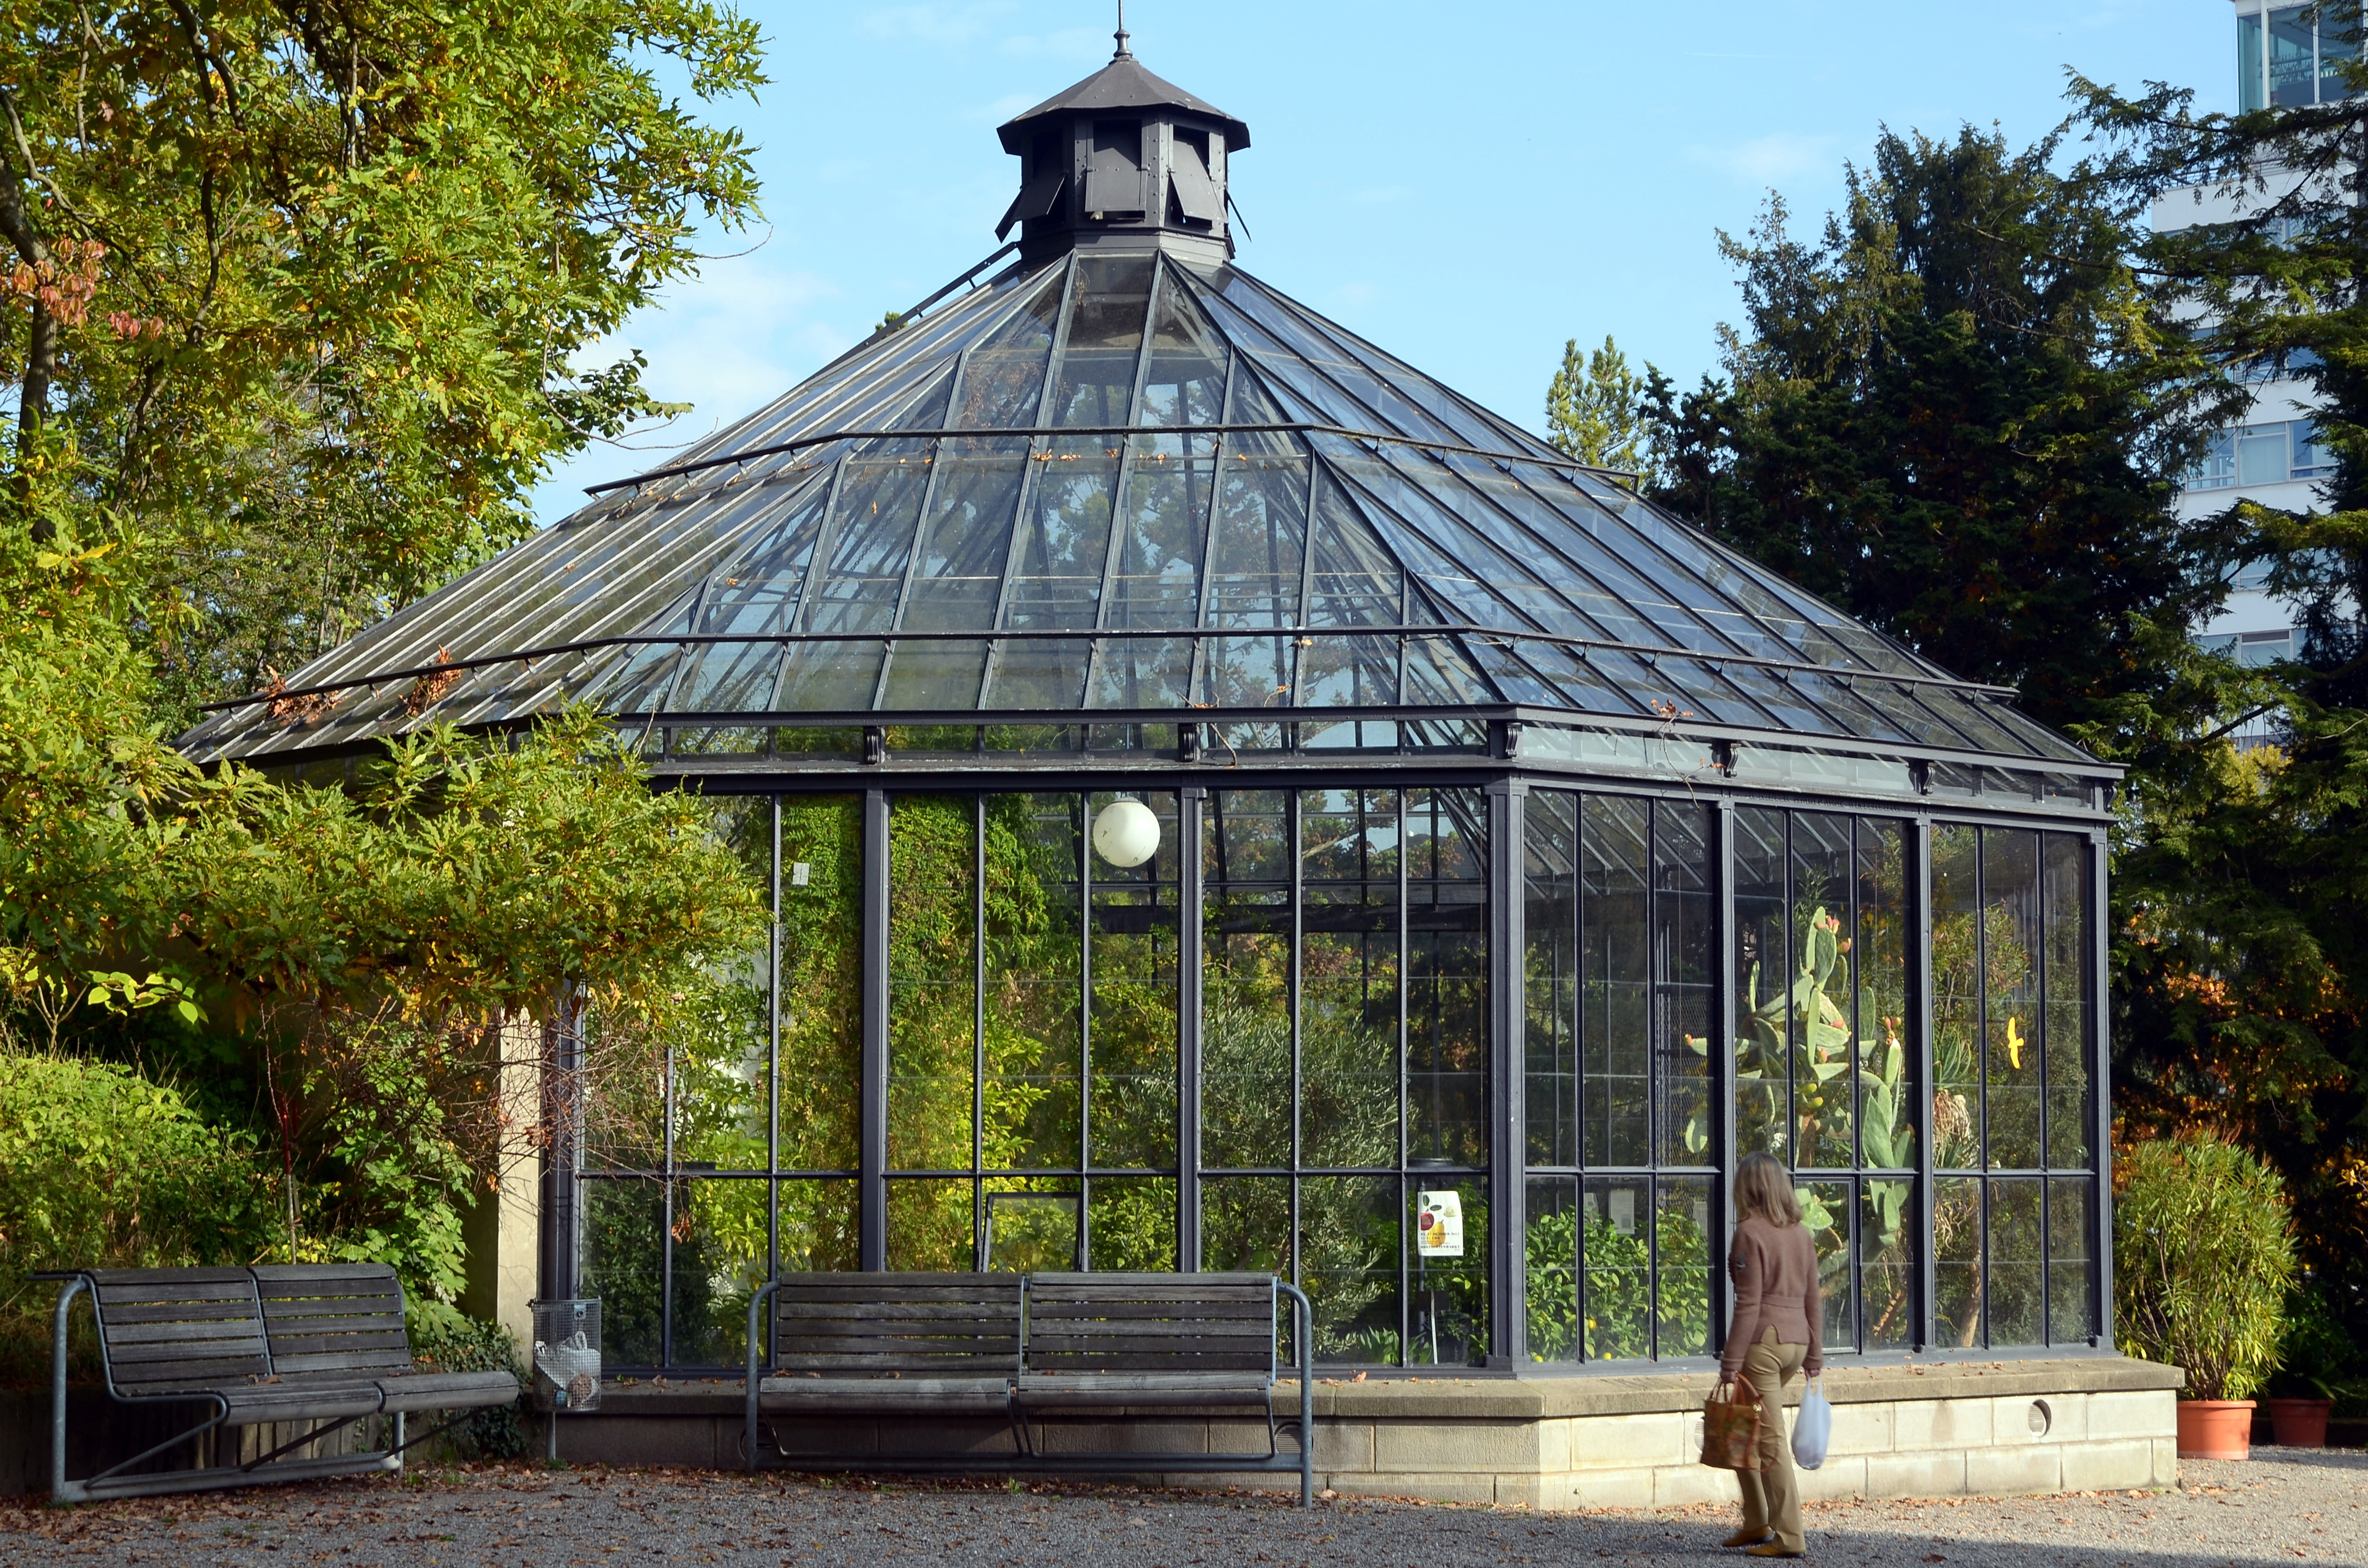 file alter botanischer garten z rich palmenhaus 2012 10 22 15 07 31 jpg wikimedia commons. Black Bedroom Furniture Sets. Home Design Ideas